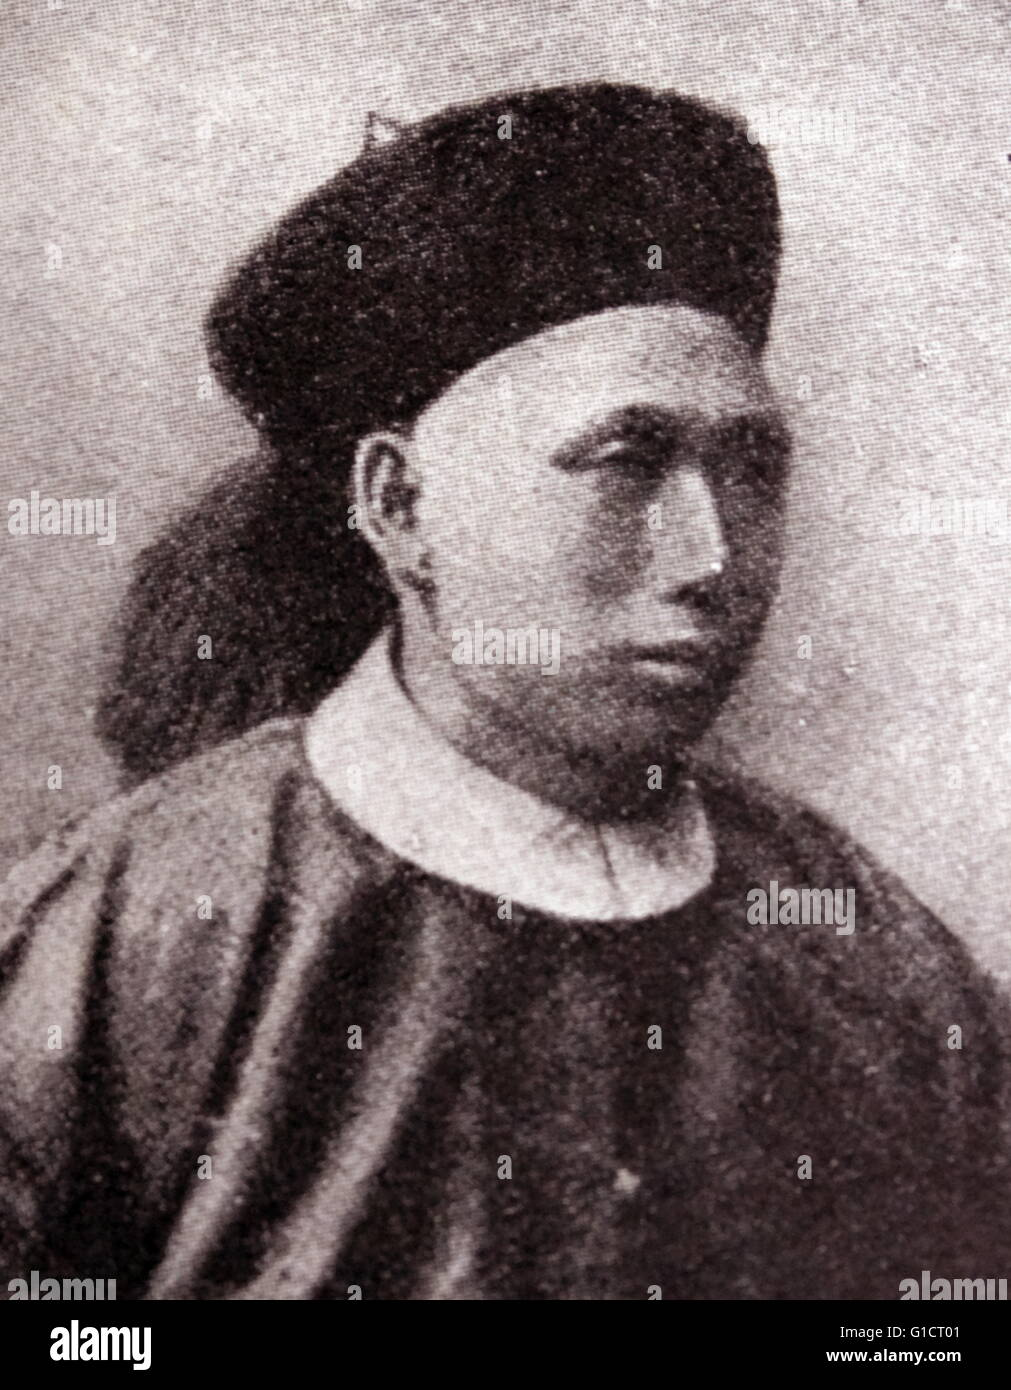 Photographic portrait of Ding Ruchang (1836-1895) a career military officer in the late Qing dynasty military of - Stock Image